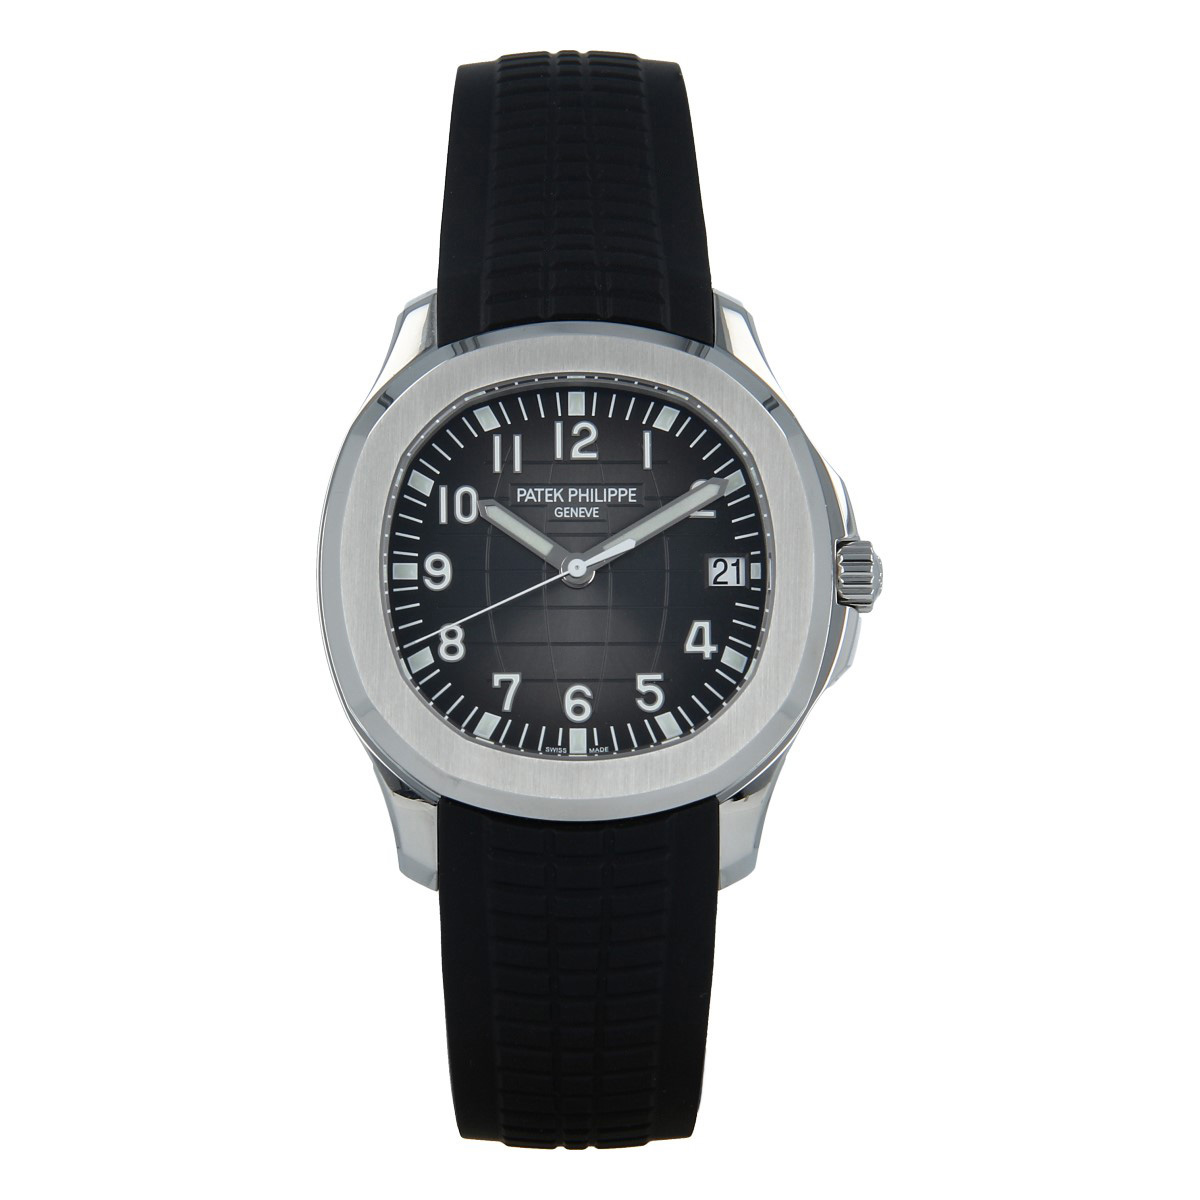 Patek Philippe Aquanaut 5167A Steel *New* | Buy second-hand Patek Philippe watch